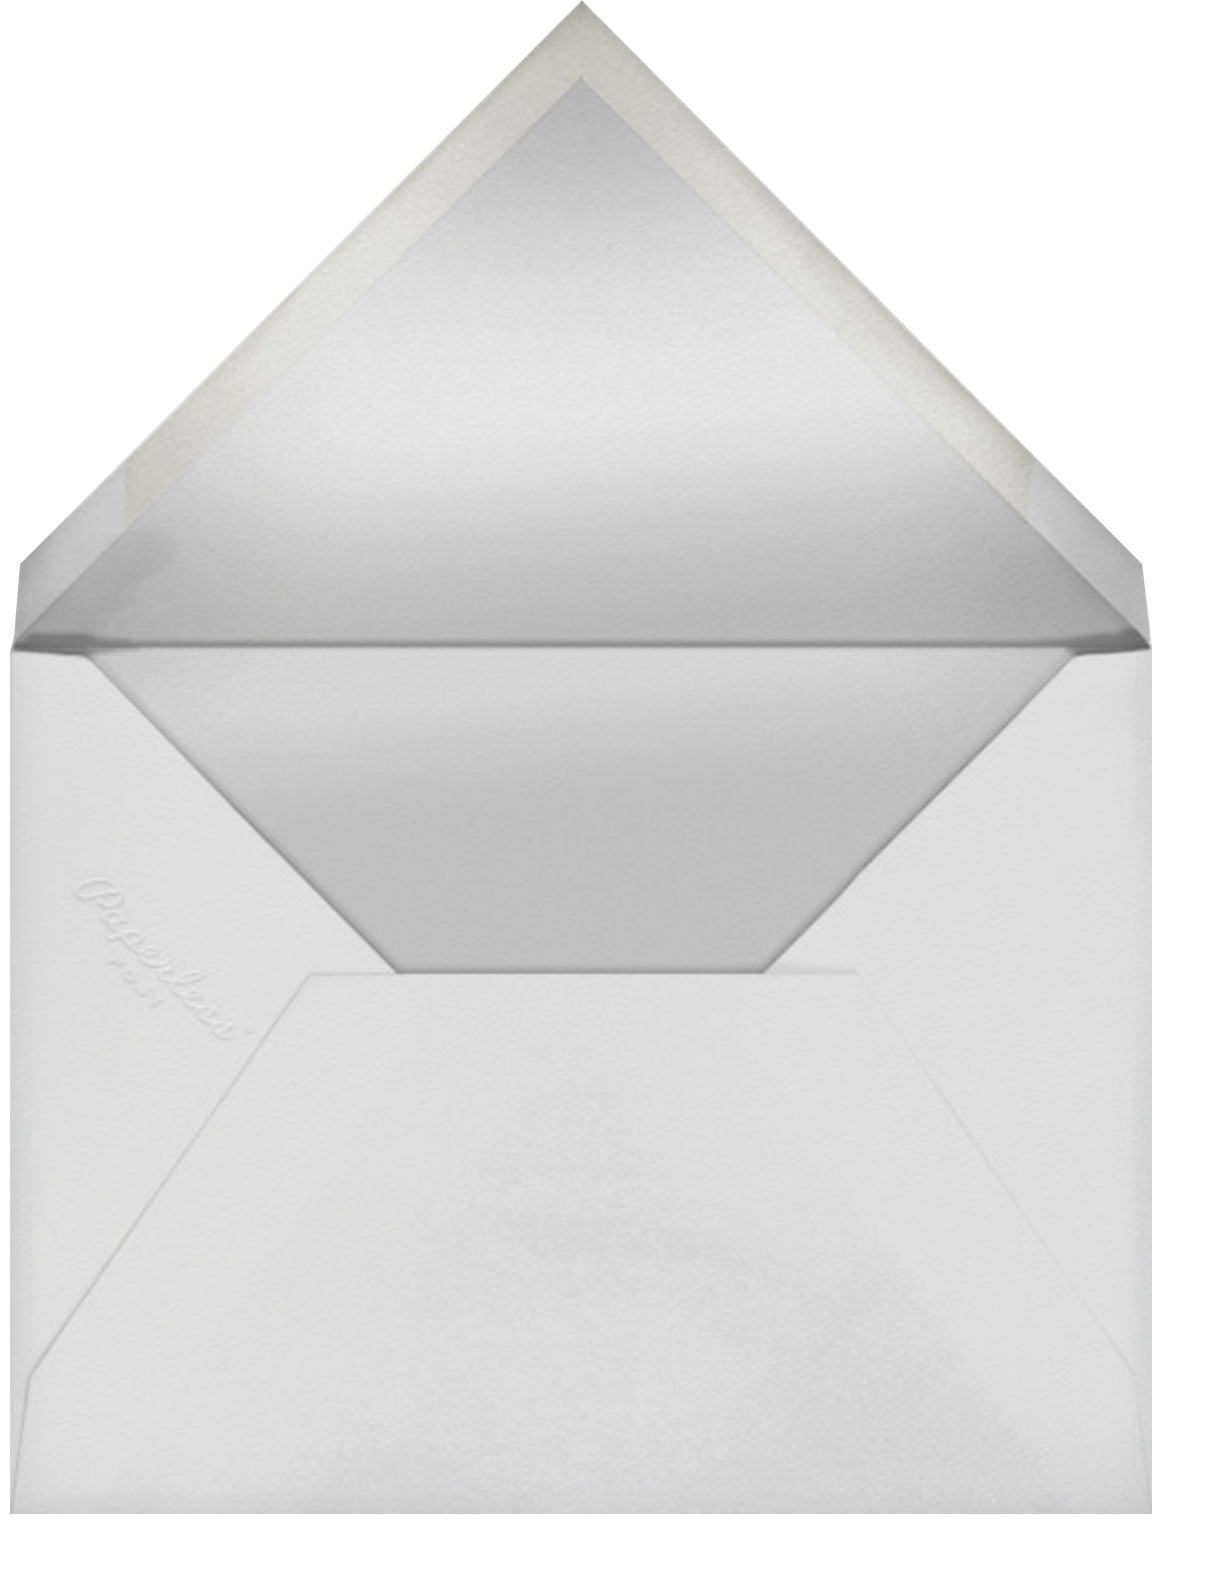 Together Forever - Paperless Post - Love and romance - envelope back